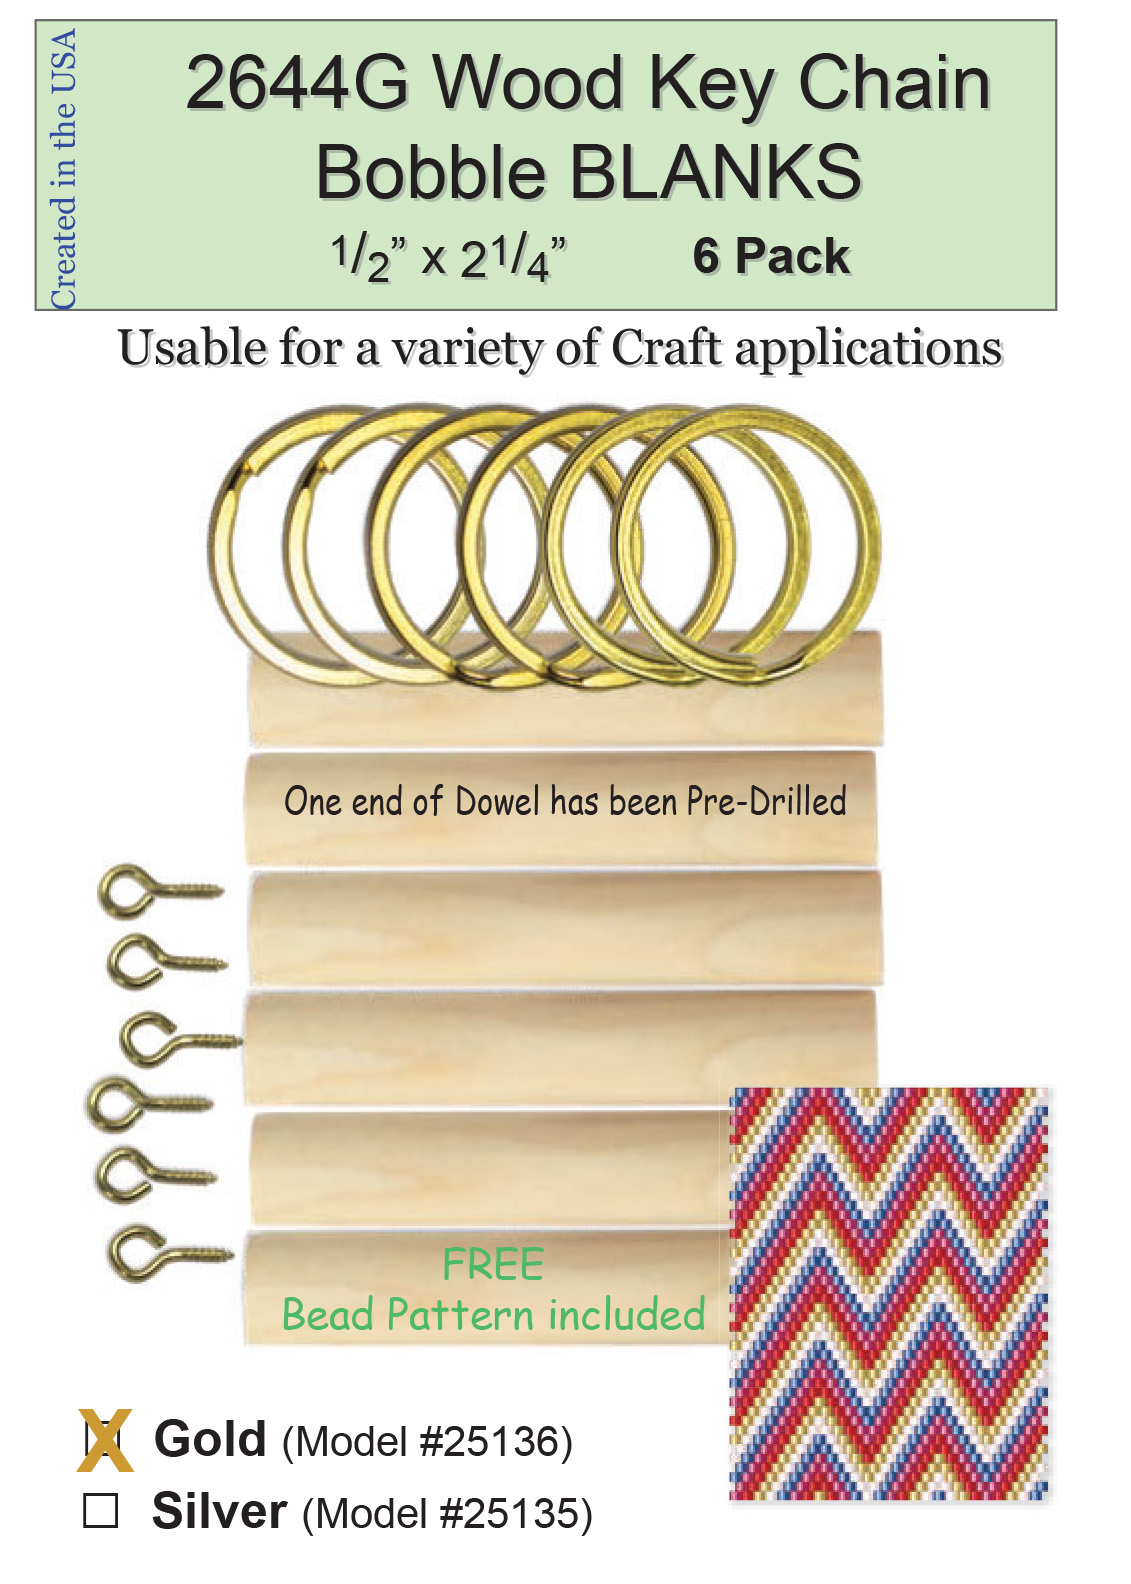 "Wood Key Chain Bobble Blanks Gold 1/2"" BLANK 6 Pack 2644G"